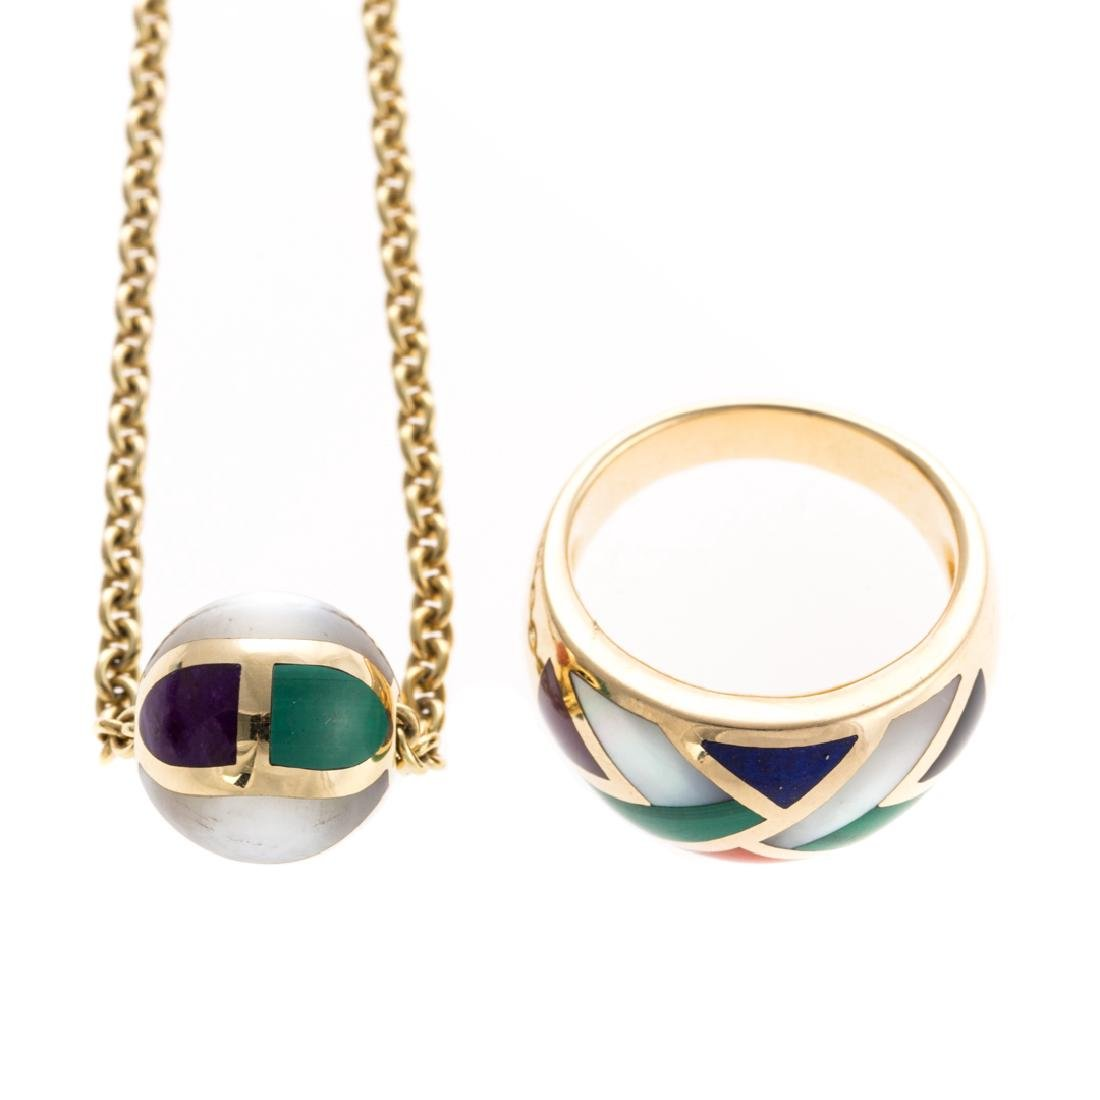 A Lady's Gemstone Inlay Ring & Pendant in 14K Gold